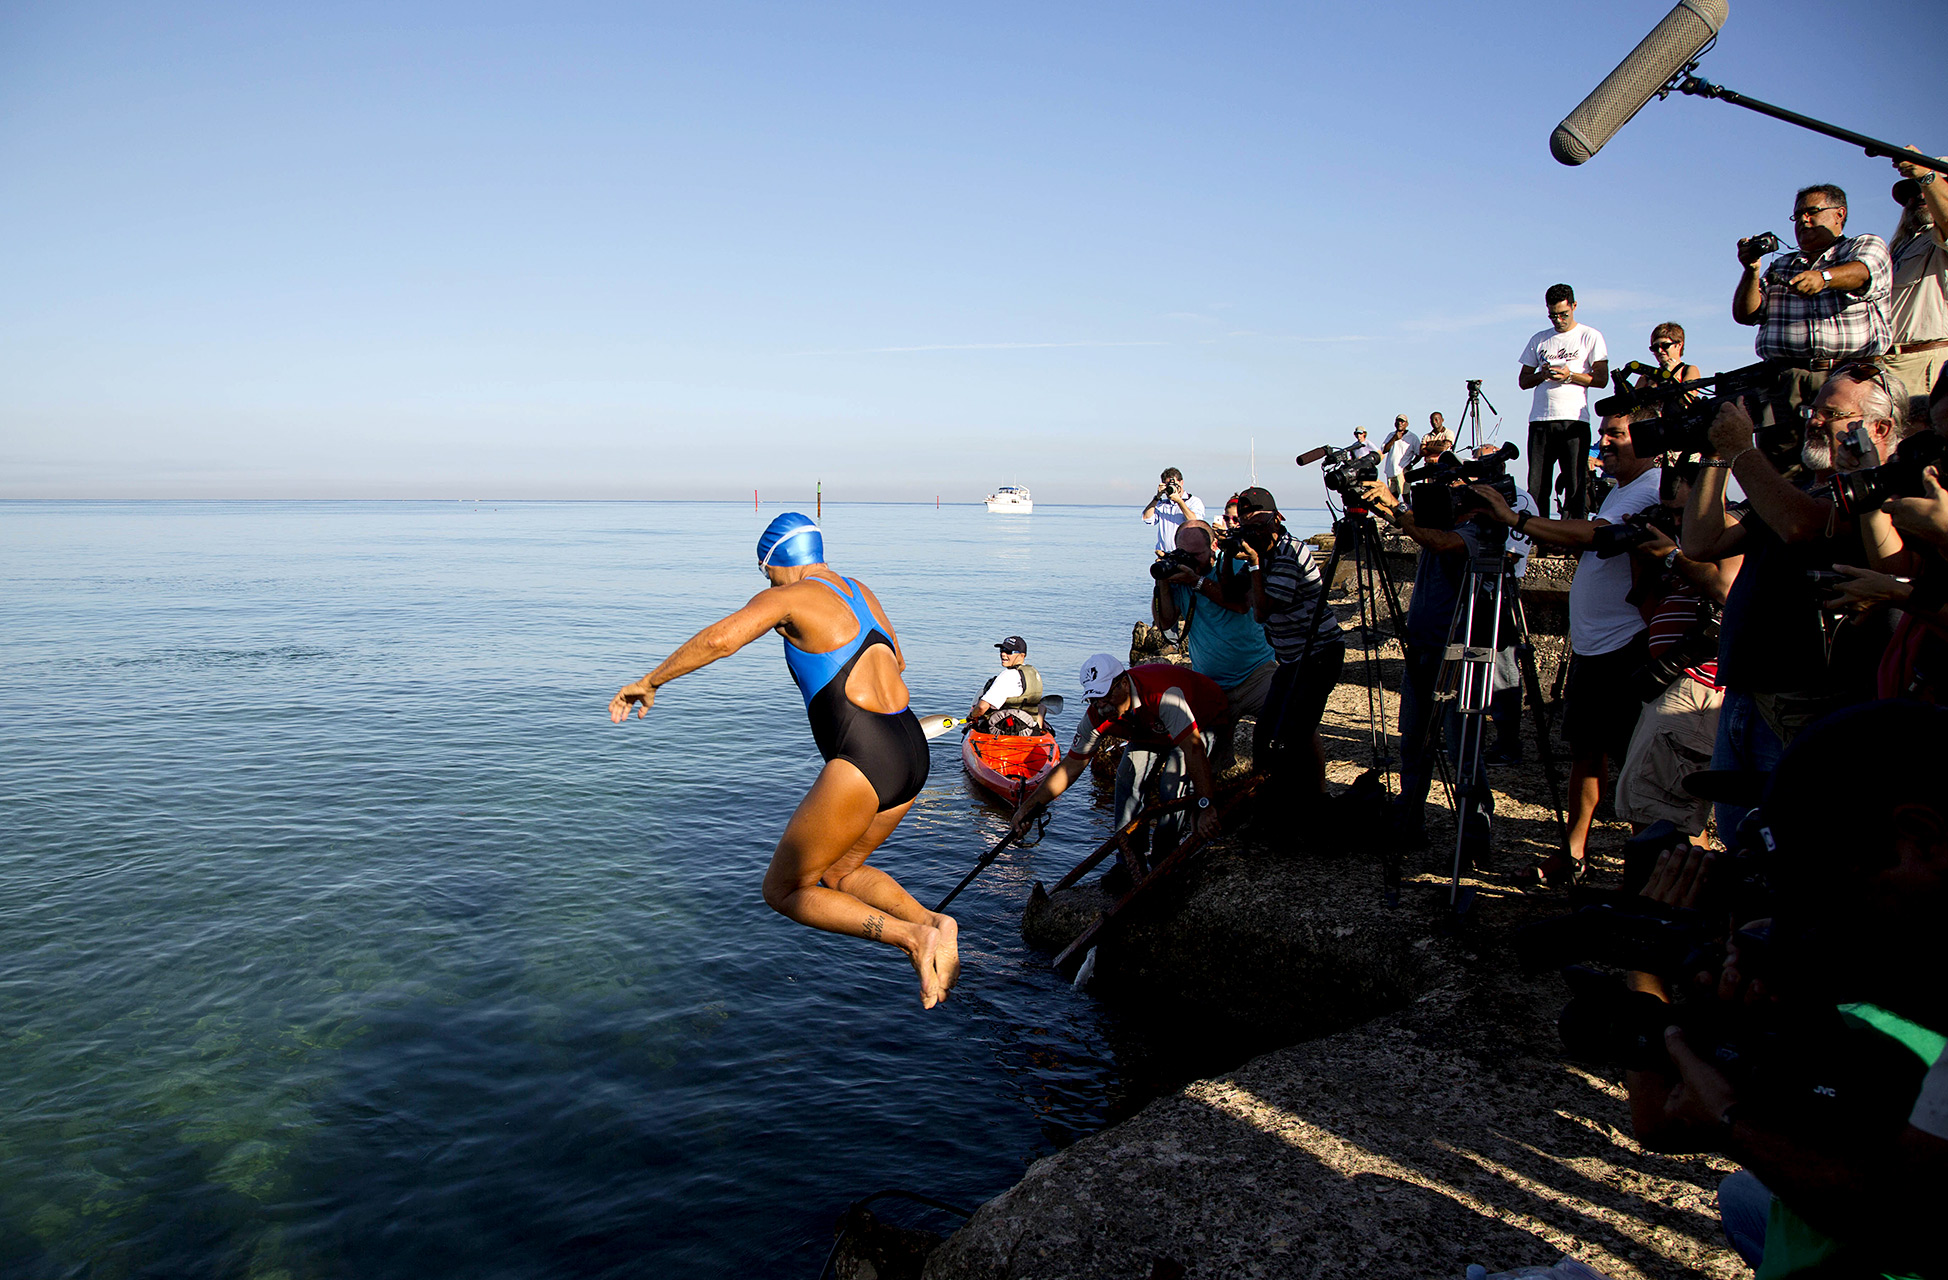 A 64-year-old Diana Nyad jumped into Cuban waters on Aug. 31, 2013, on her fifth attempt to become the first person to swim from Havana to the Florida Keys without a shark cage.